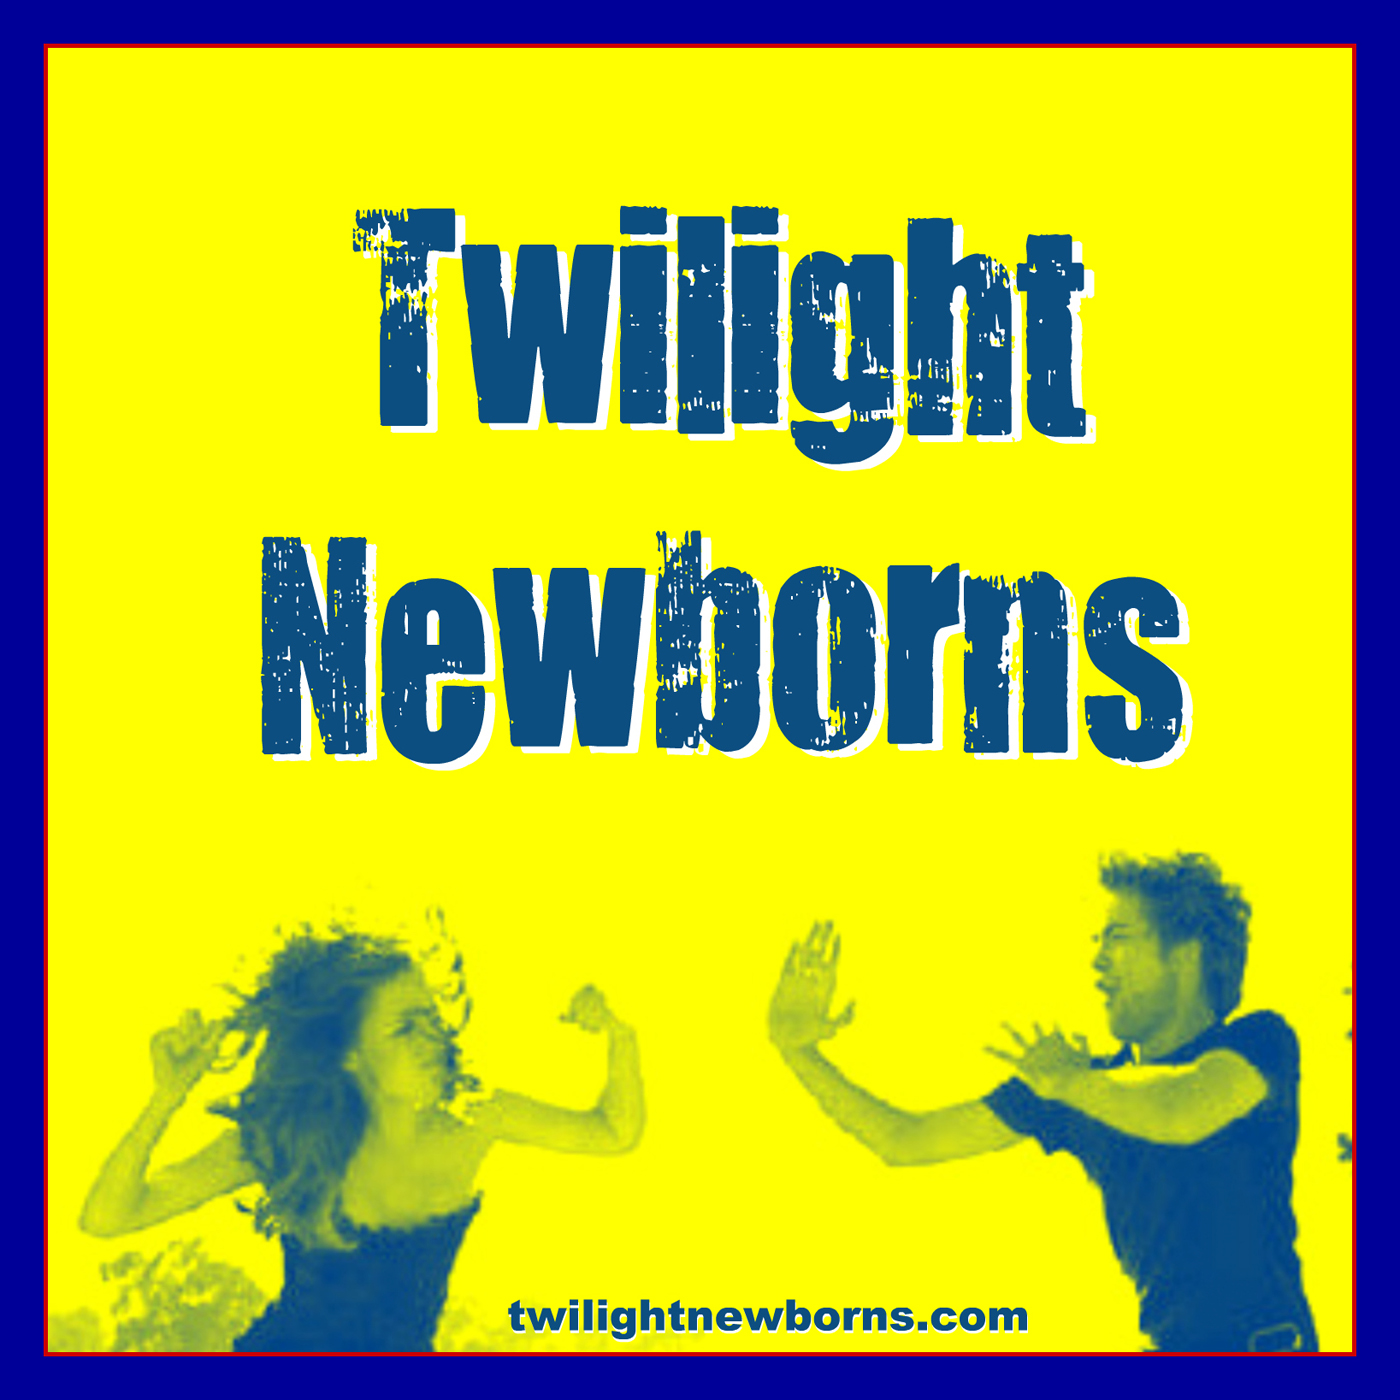 Twilight Newborns